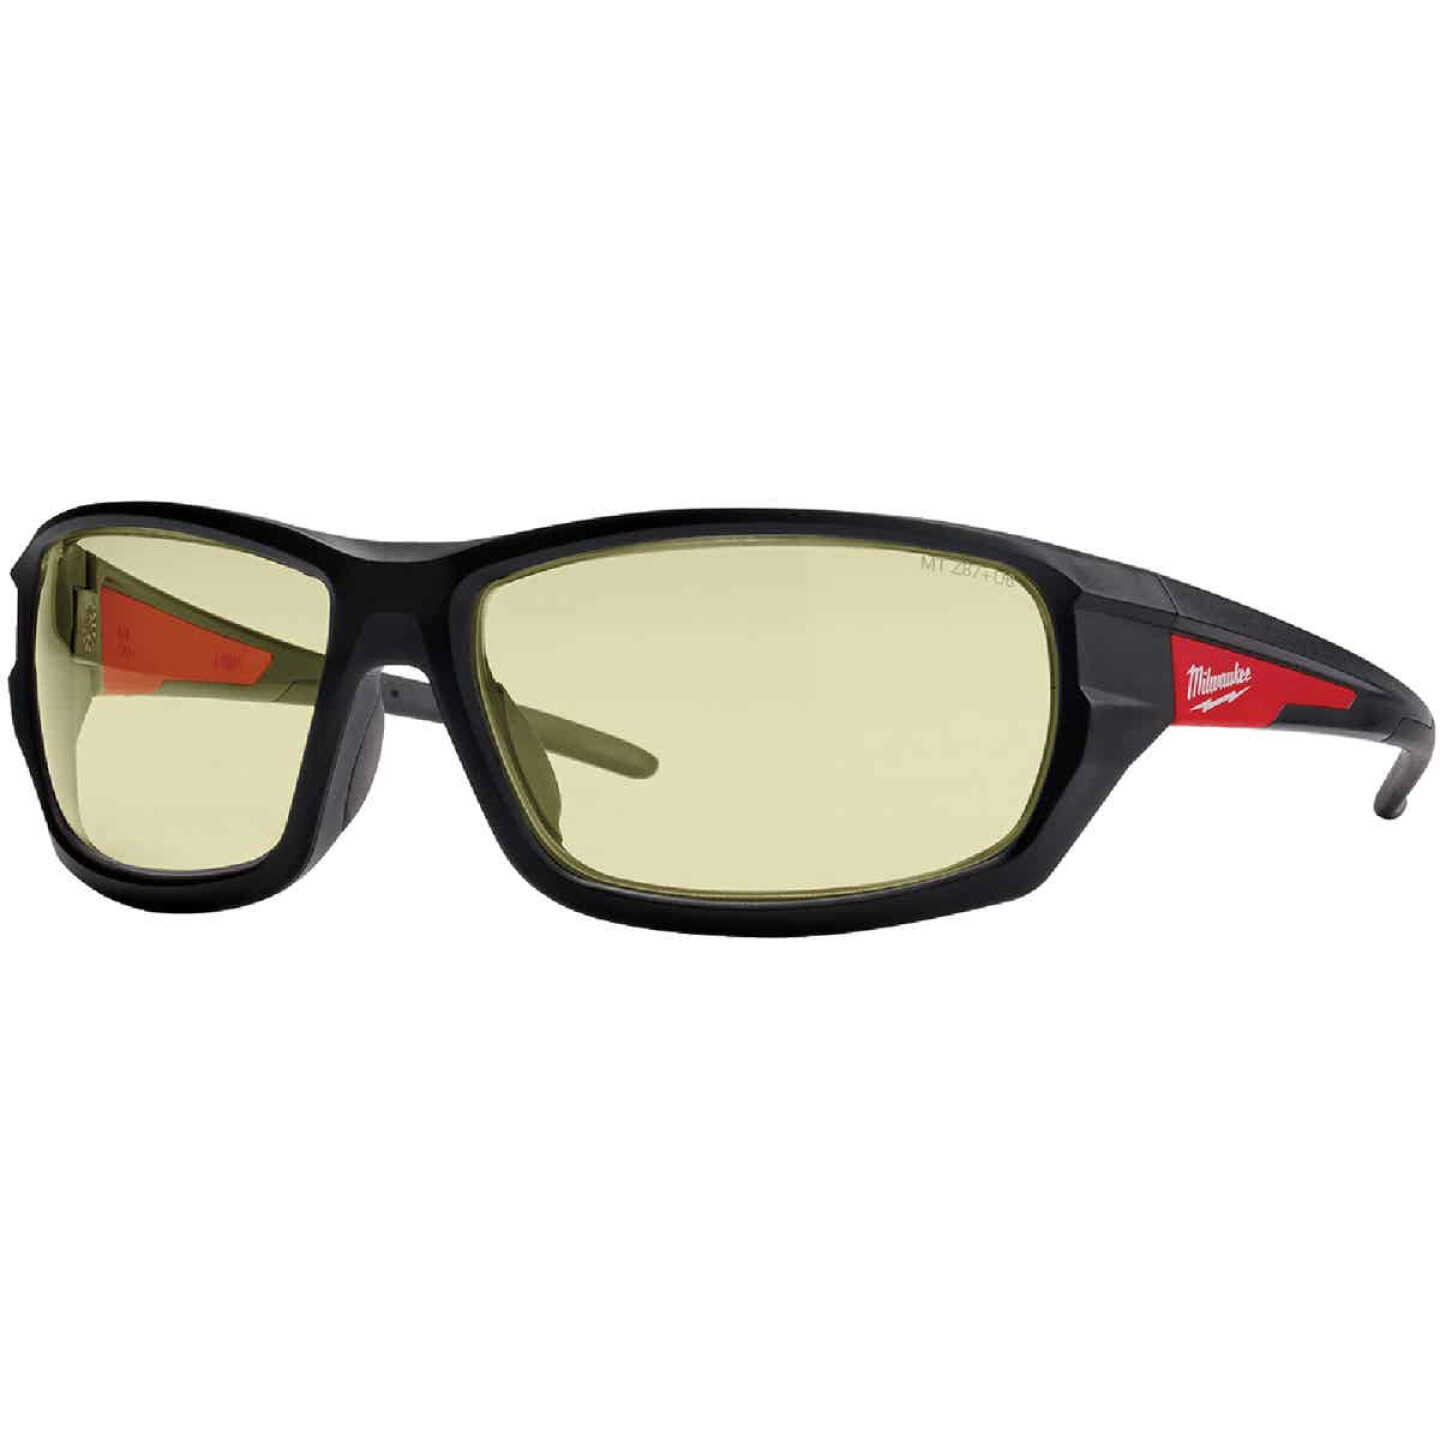 Milwaukee Performance Red & Black Frame Safety Glasses with Yellow Fog-Free Lenses Image 1